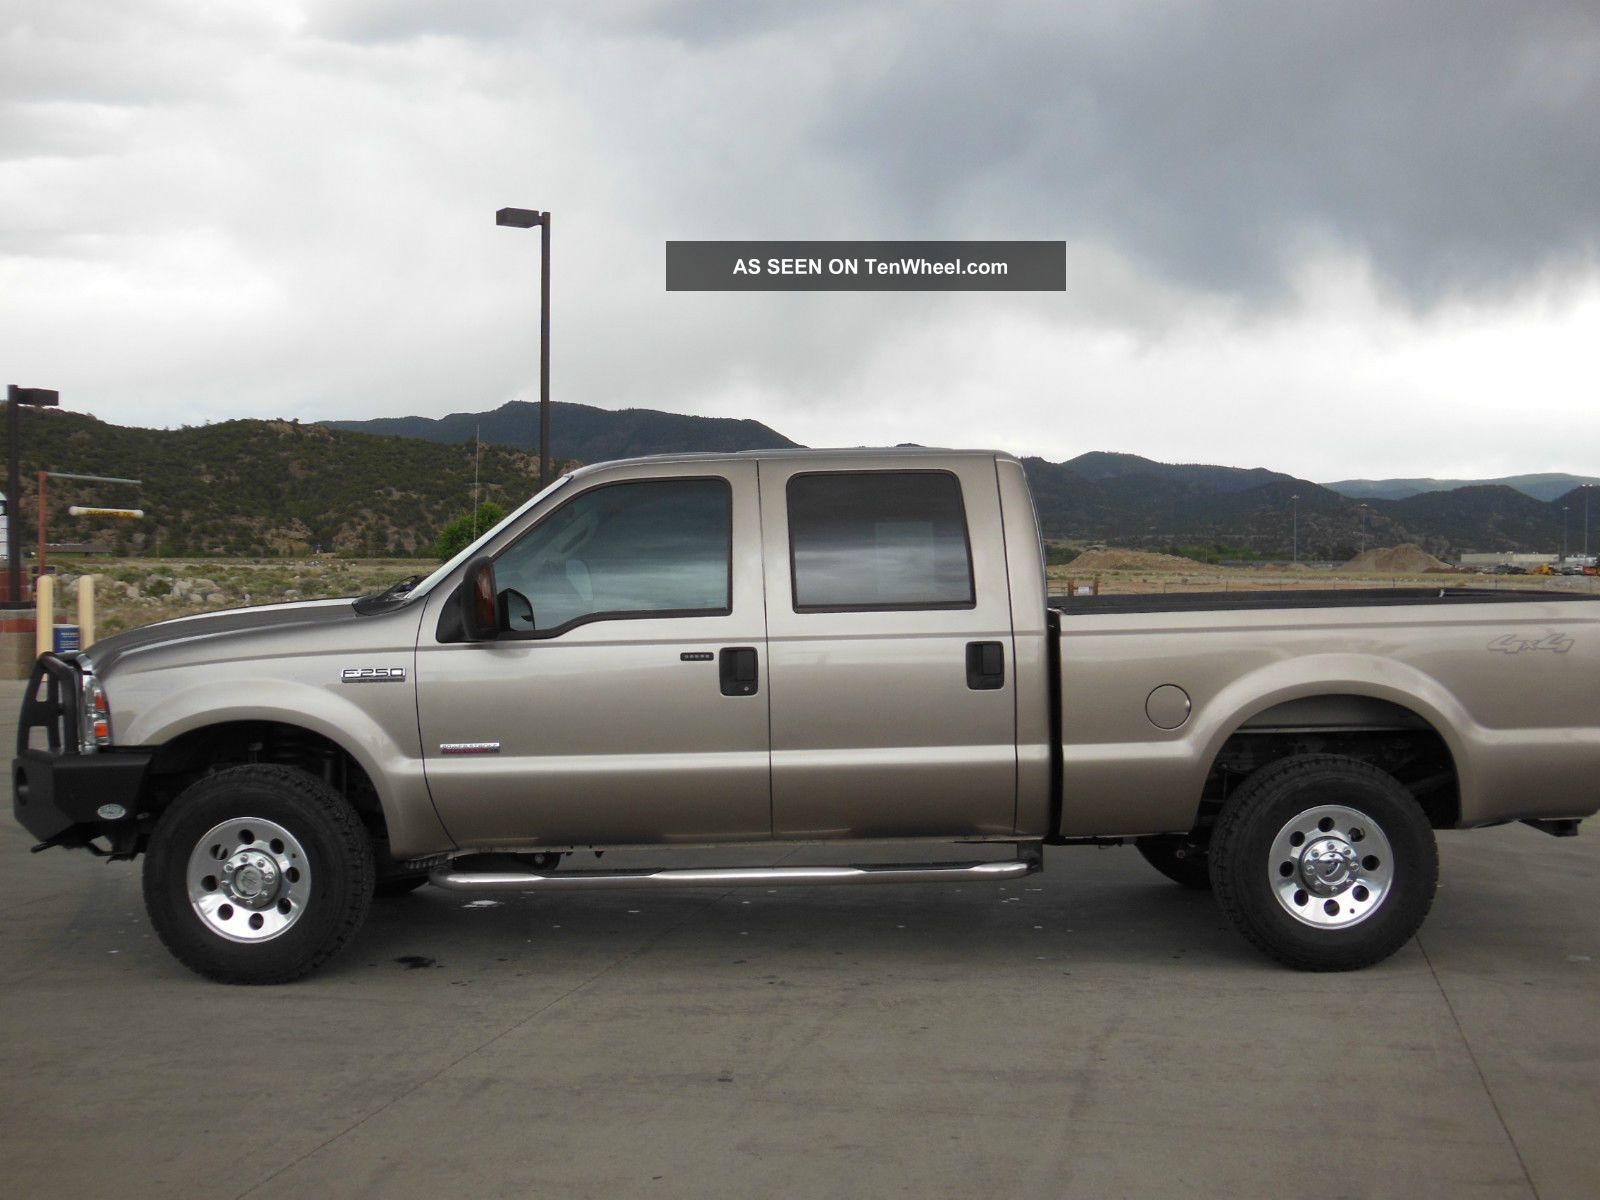 2005 ford f250 duty xlt crew cab short bed. Black Bedroom Furniture Sets. Home Design Ideas